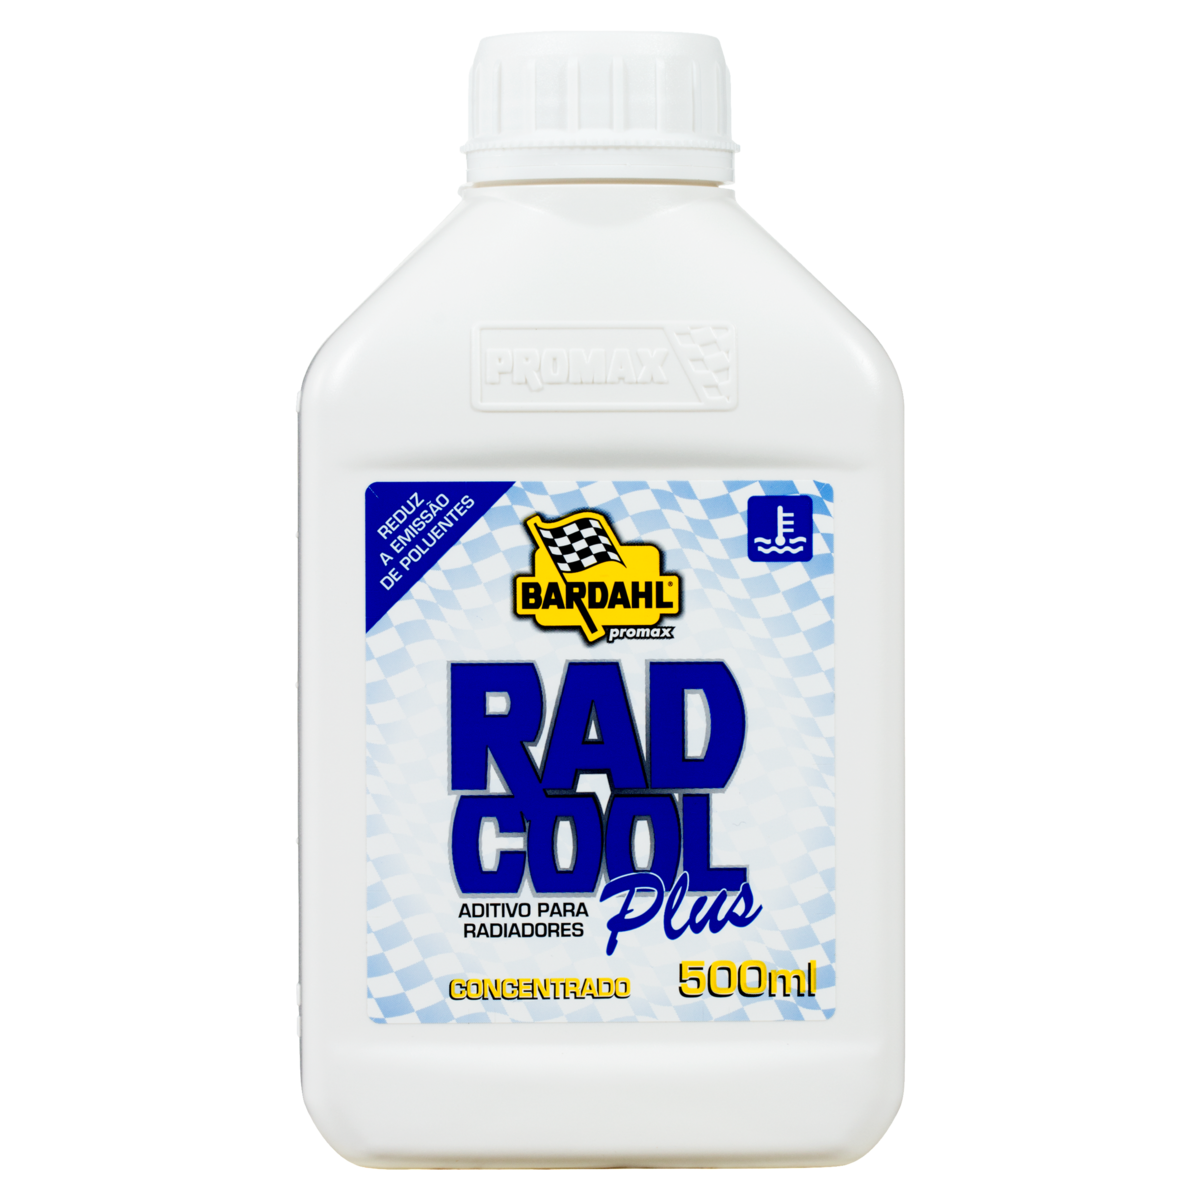 7896580700682 - ADITIVO PARA RADIADOR RAD COOL PLUS BARDAHL FRASCO 500ML